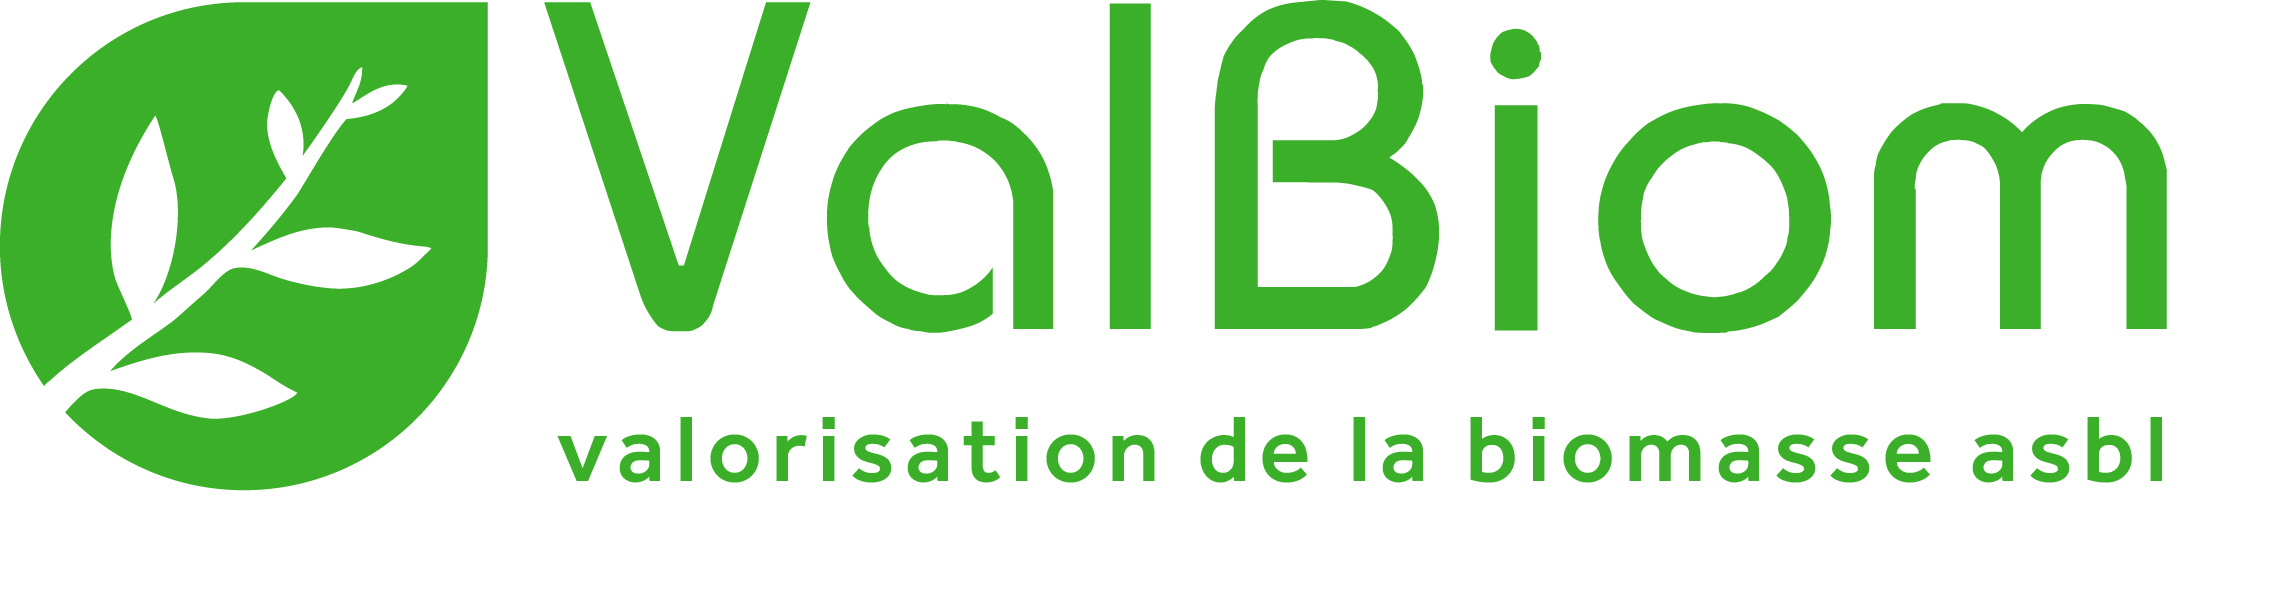 valbiom-logo_p361WEB_BiG.jpg (Impression)